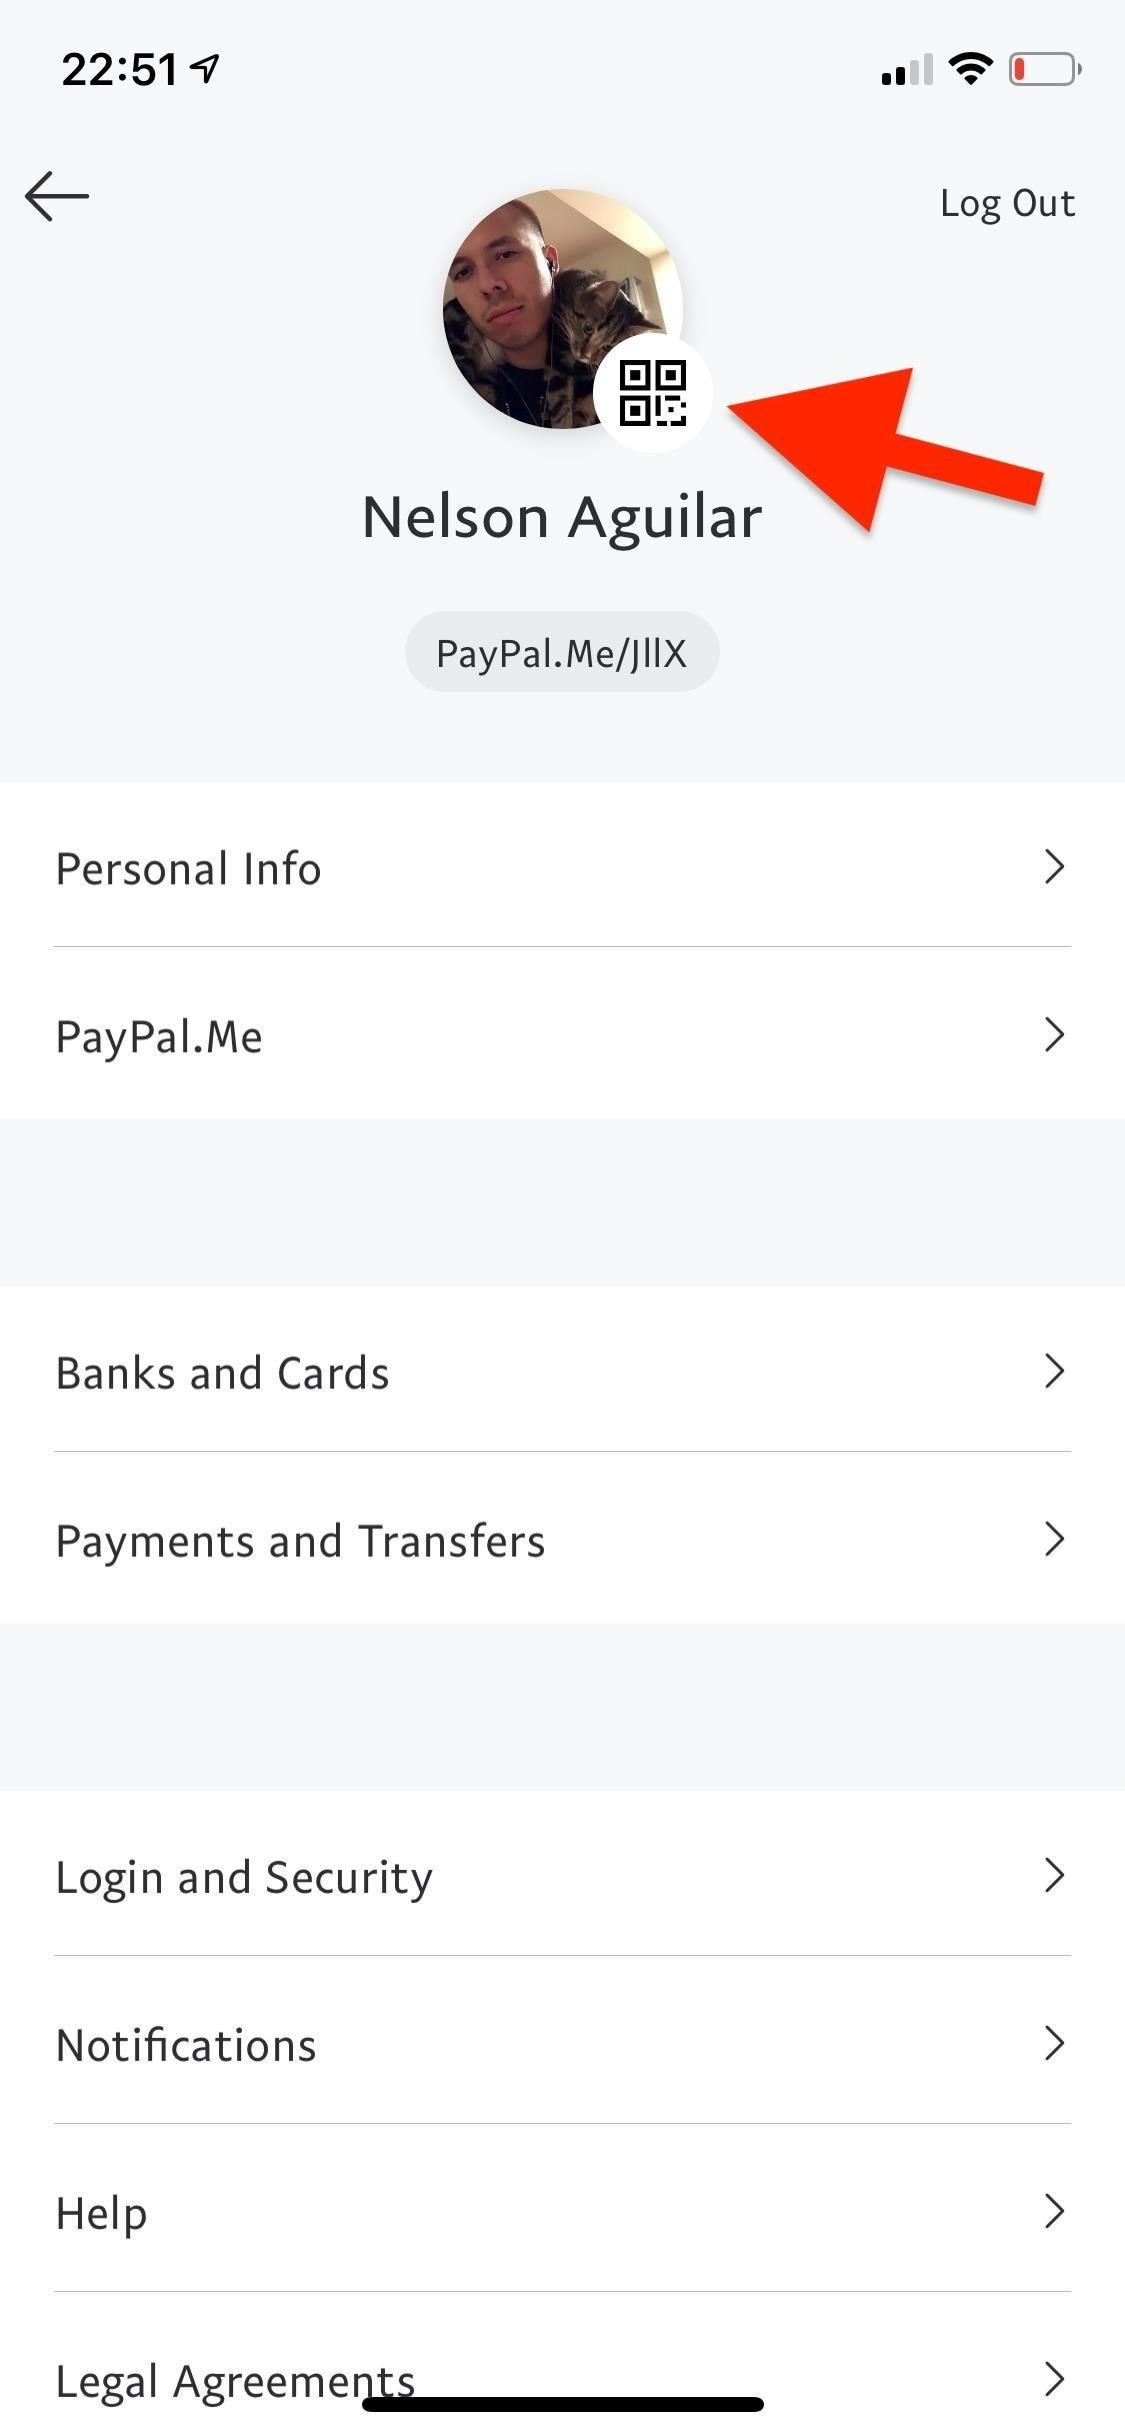 How to Share & Scan PayPal QR Codes for Faster Transactions When Receiving or Sending Money